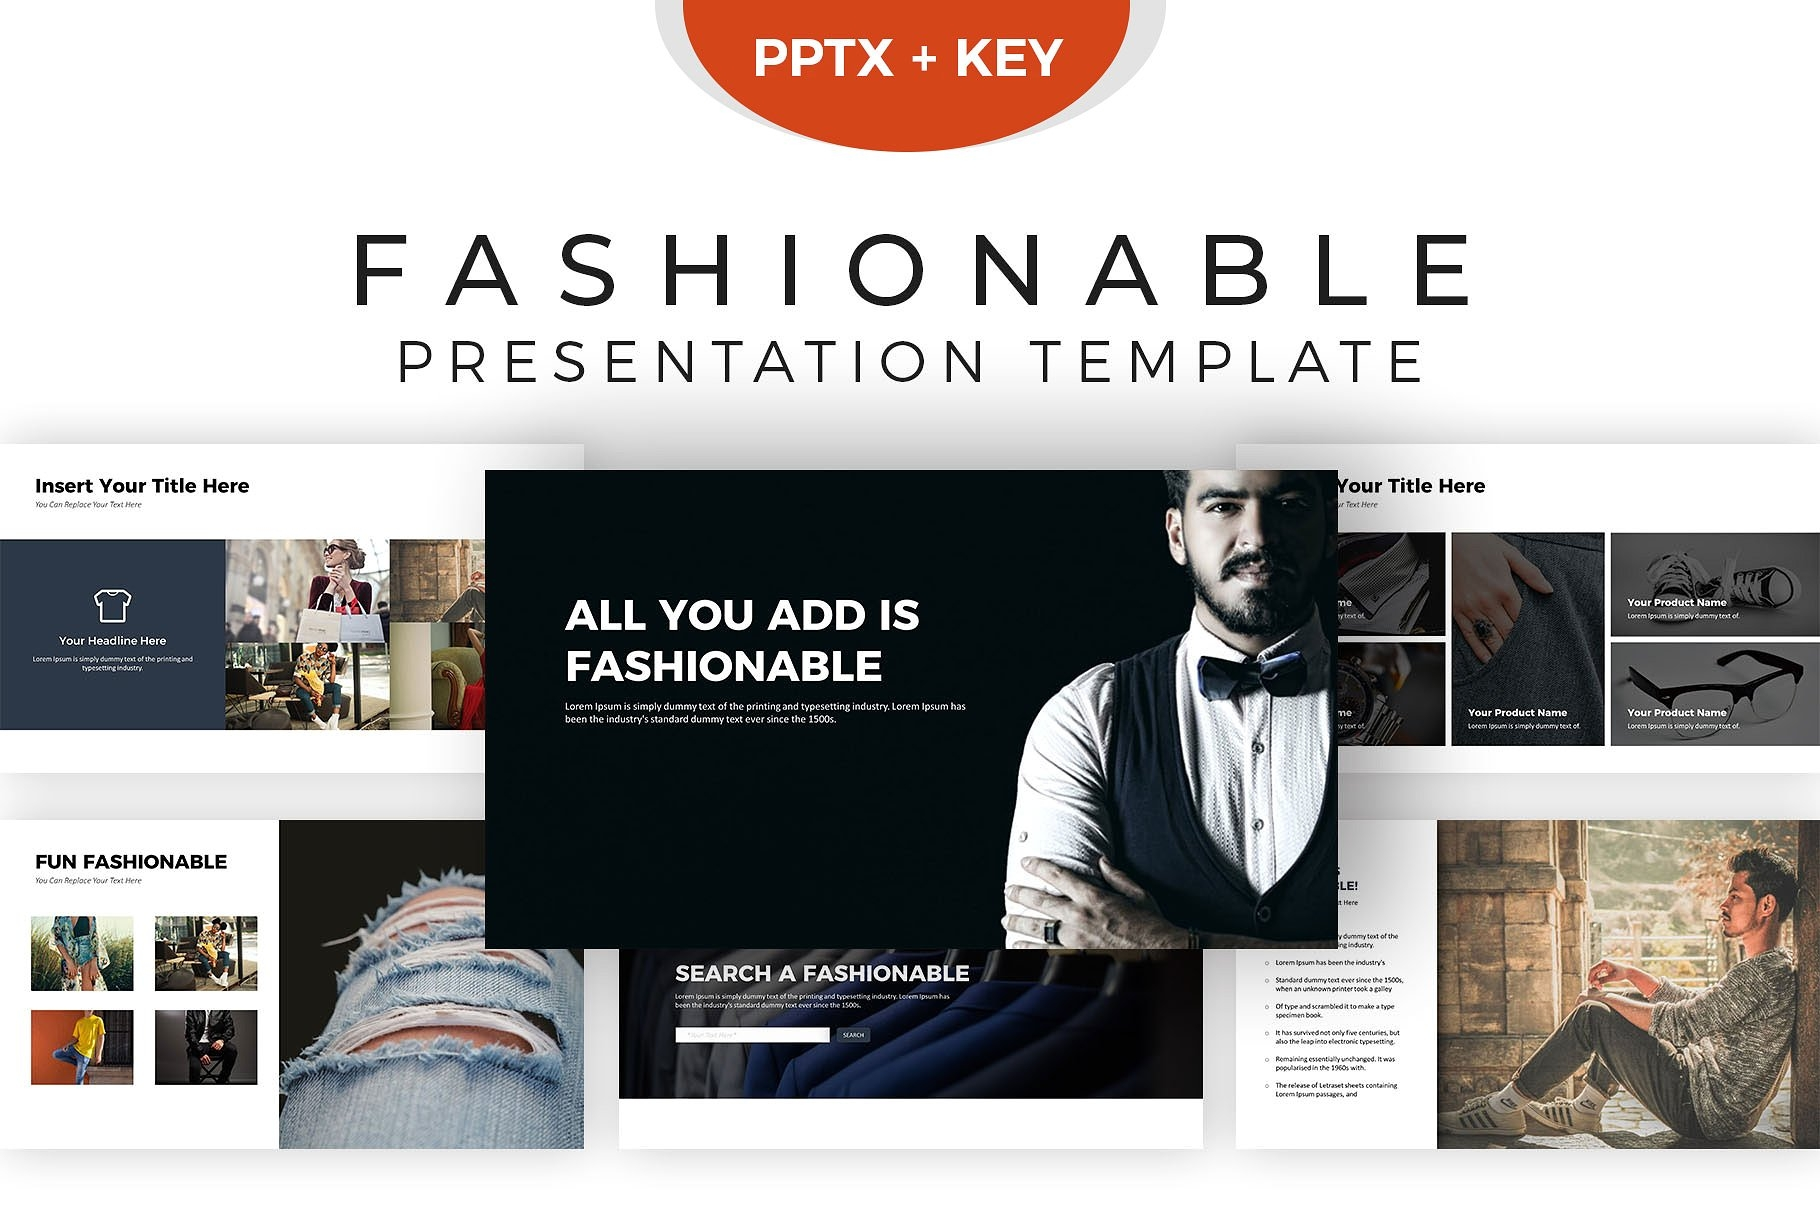 Fashionable-Presentation-Template-1.jpg